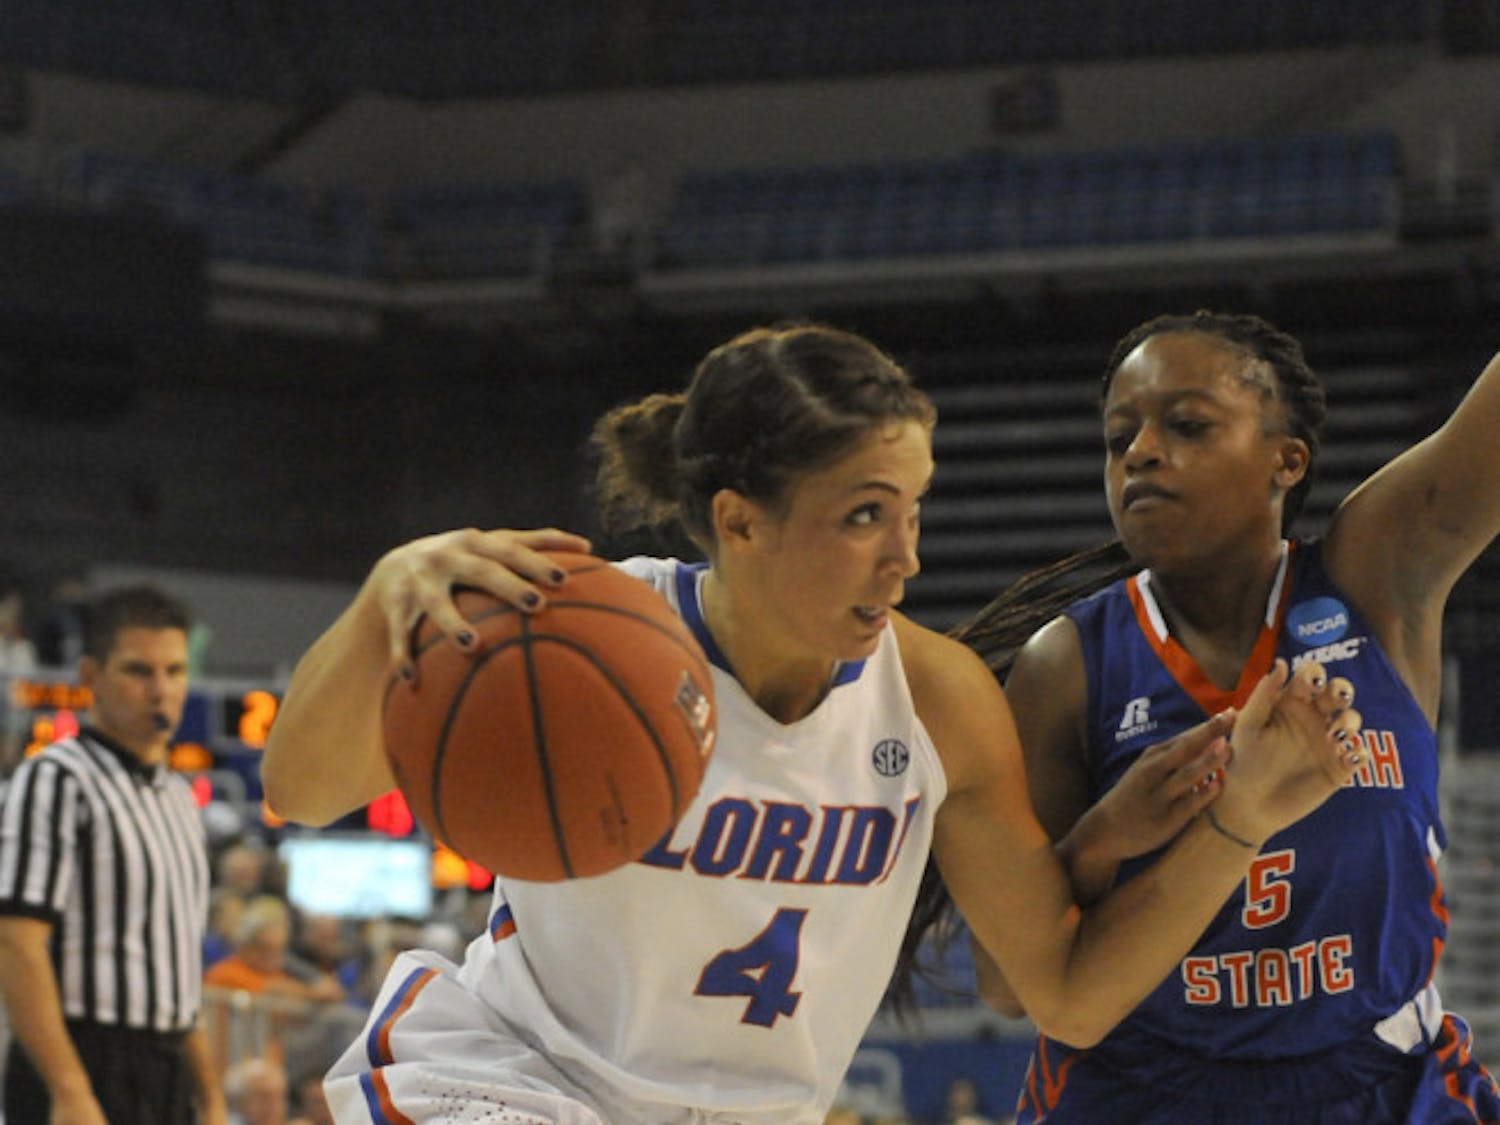 UF guard Carlie Needles drives into the paint during Florida's win against Savannah State on Nov. 24, 2015, in the O'Connell Center.